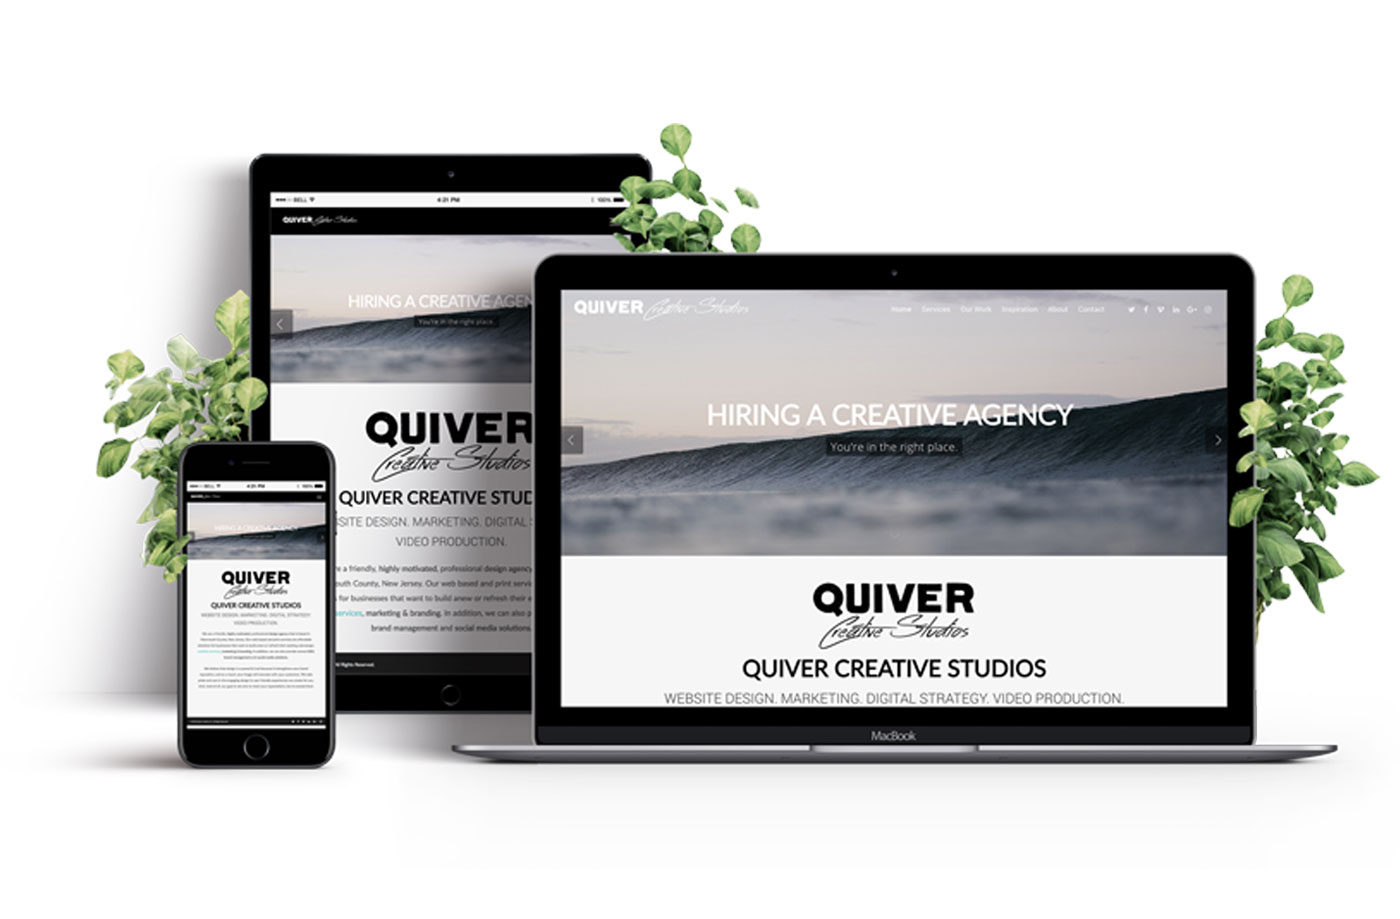 Web Design, Marketing & Video Production - Quiver Creative